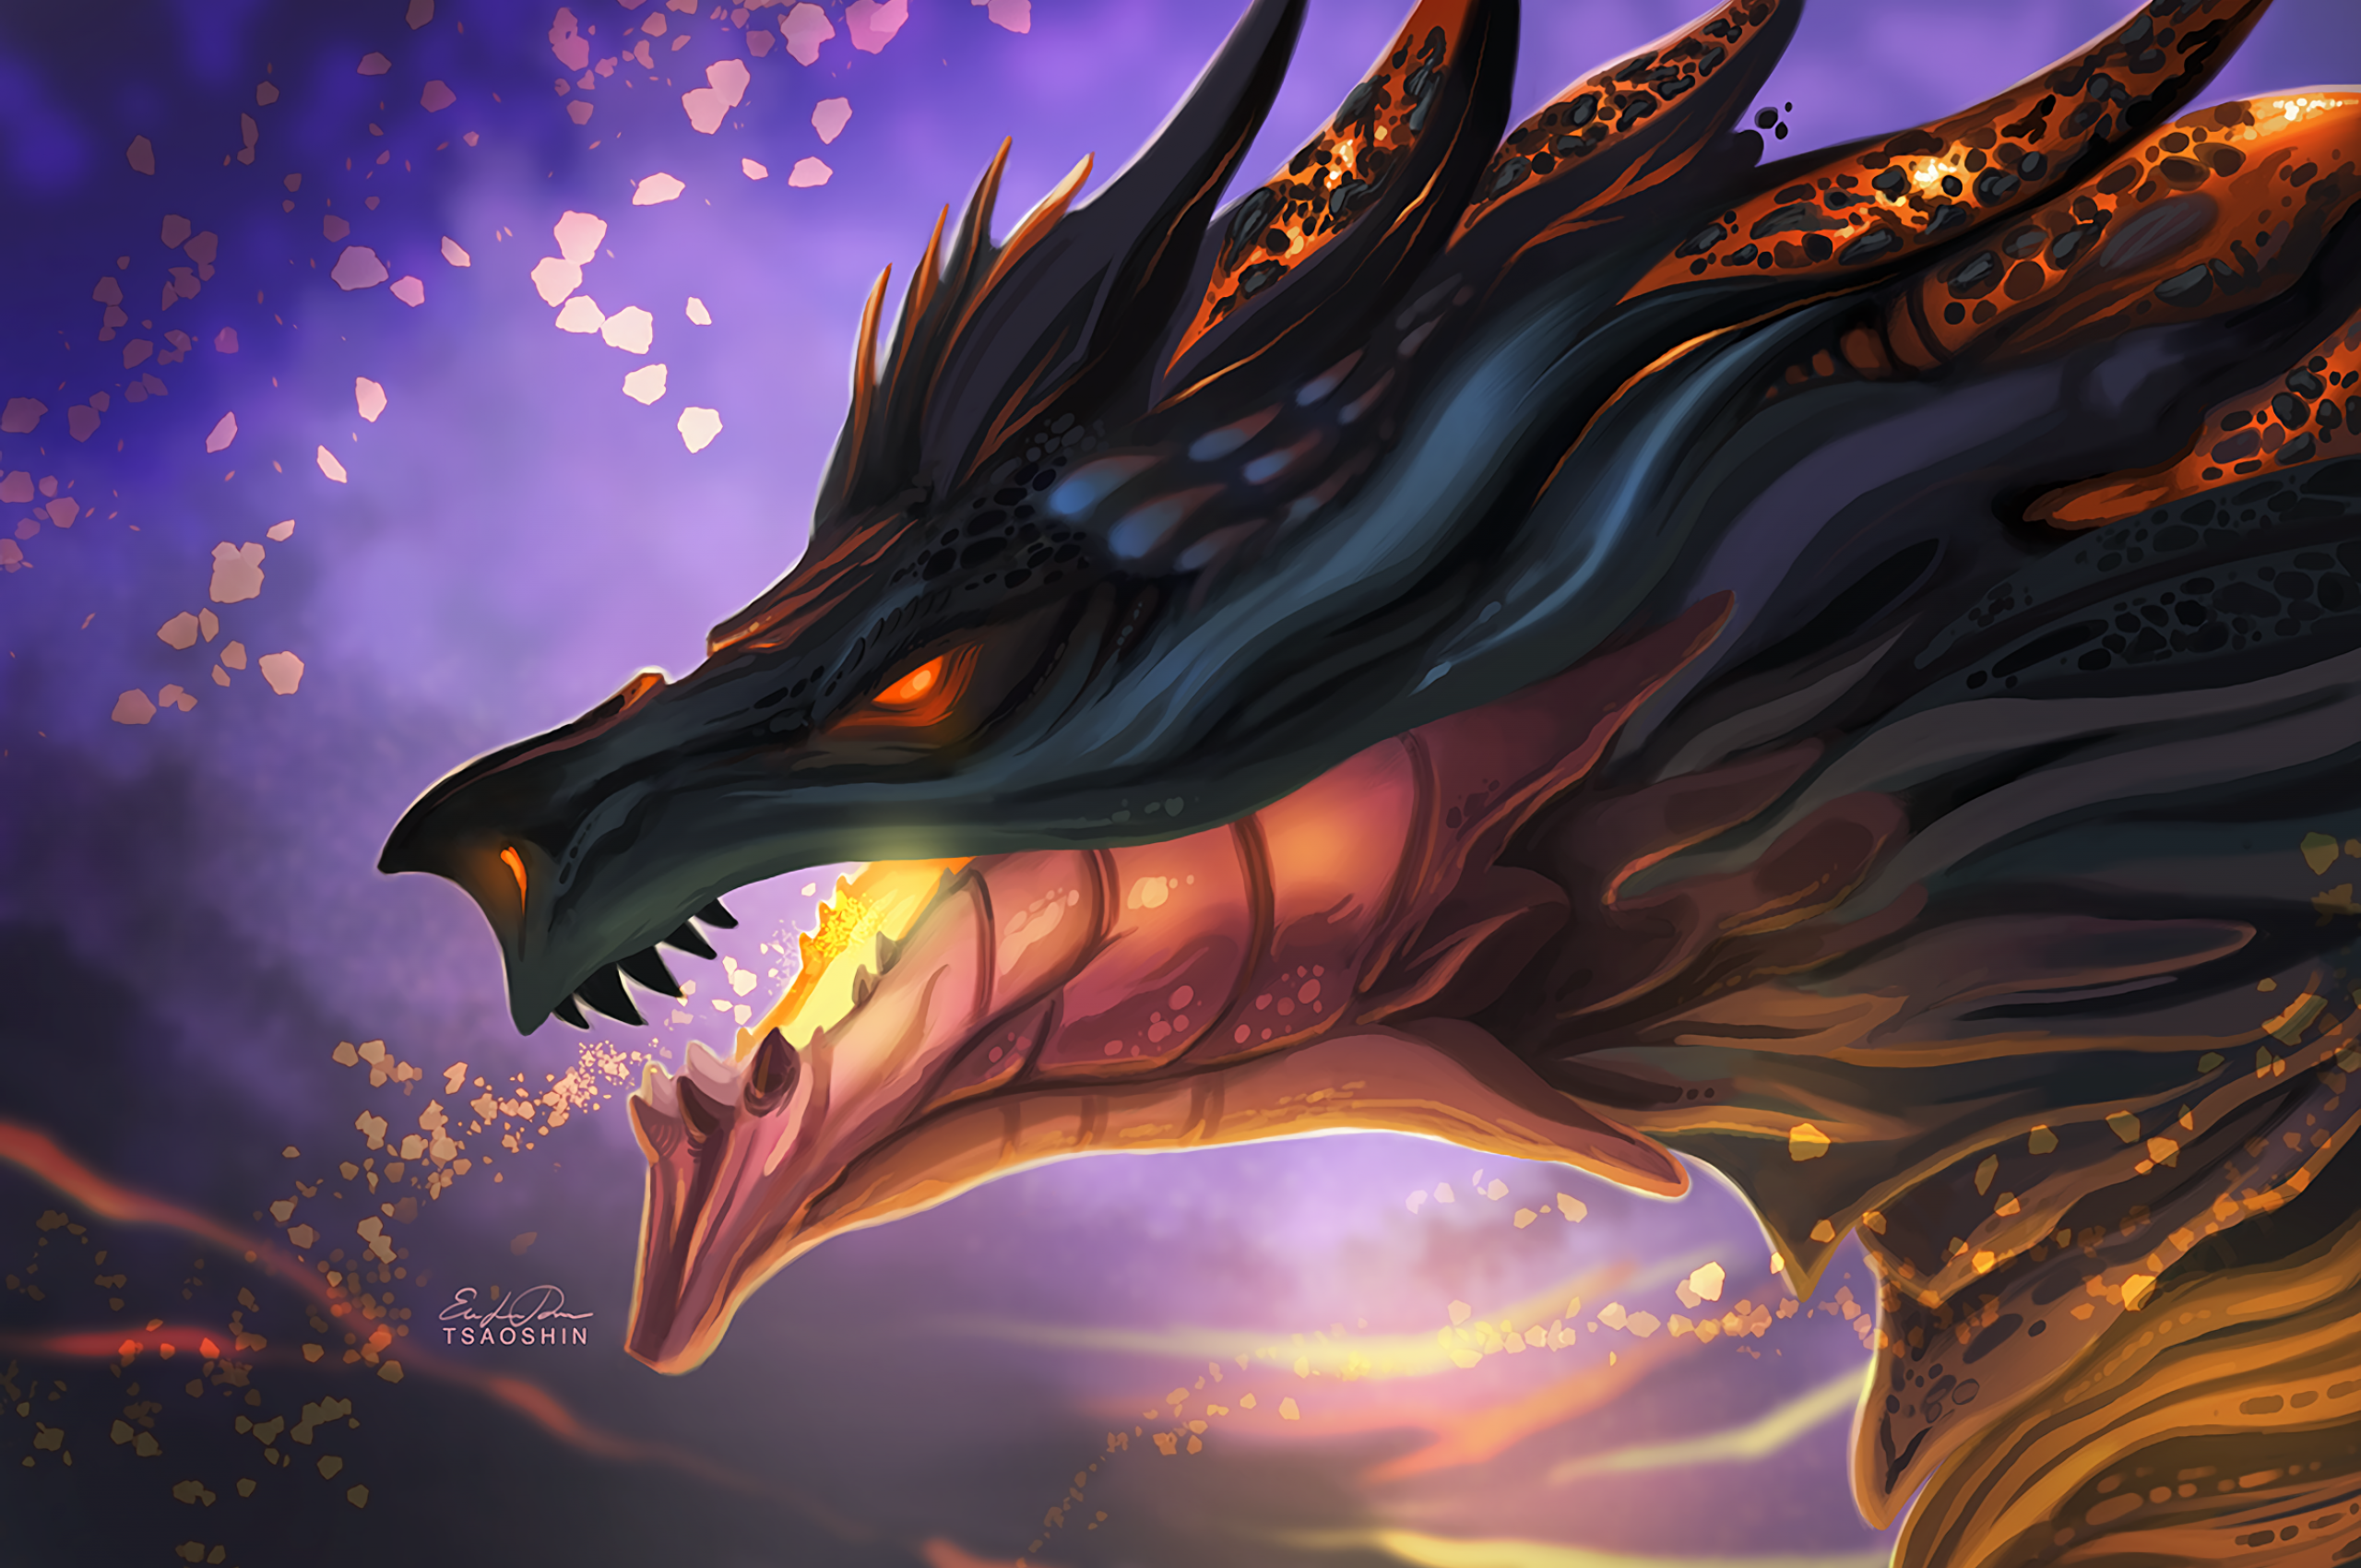 Dragon Fantasy Creatures Fire Profile View Cool Wallpapers For Chromebooks 2560x1700 Wallpaper Teahub Io